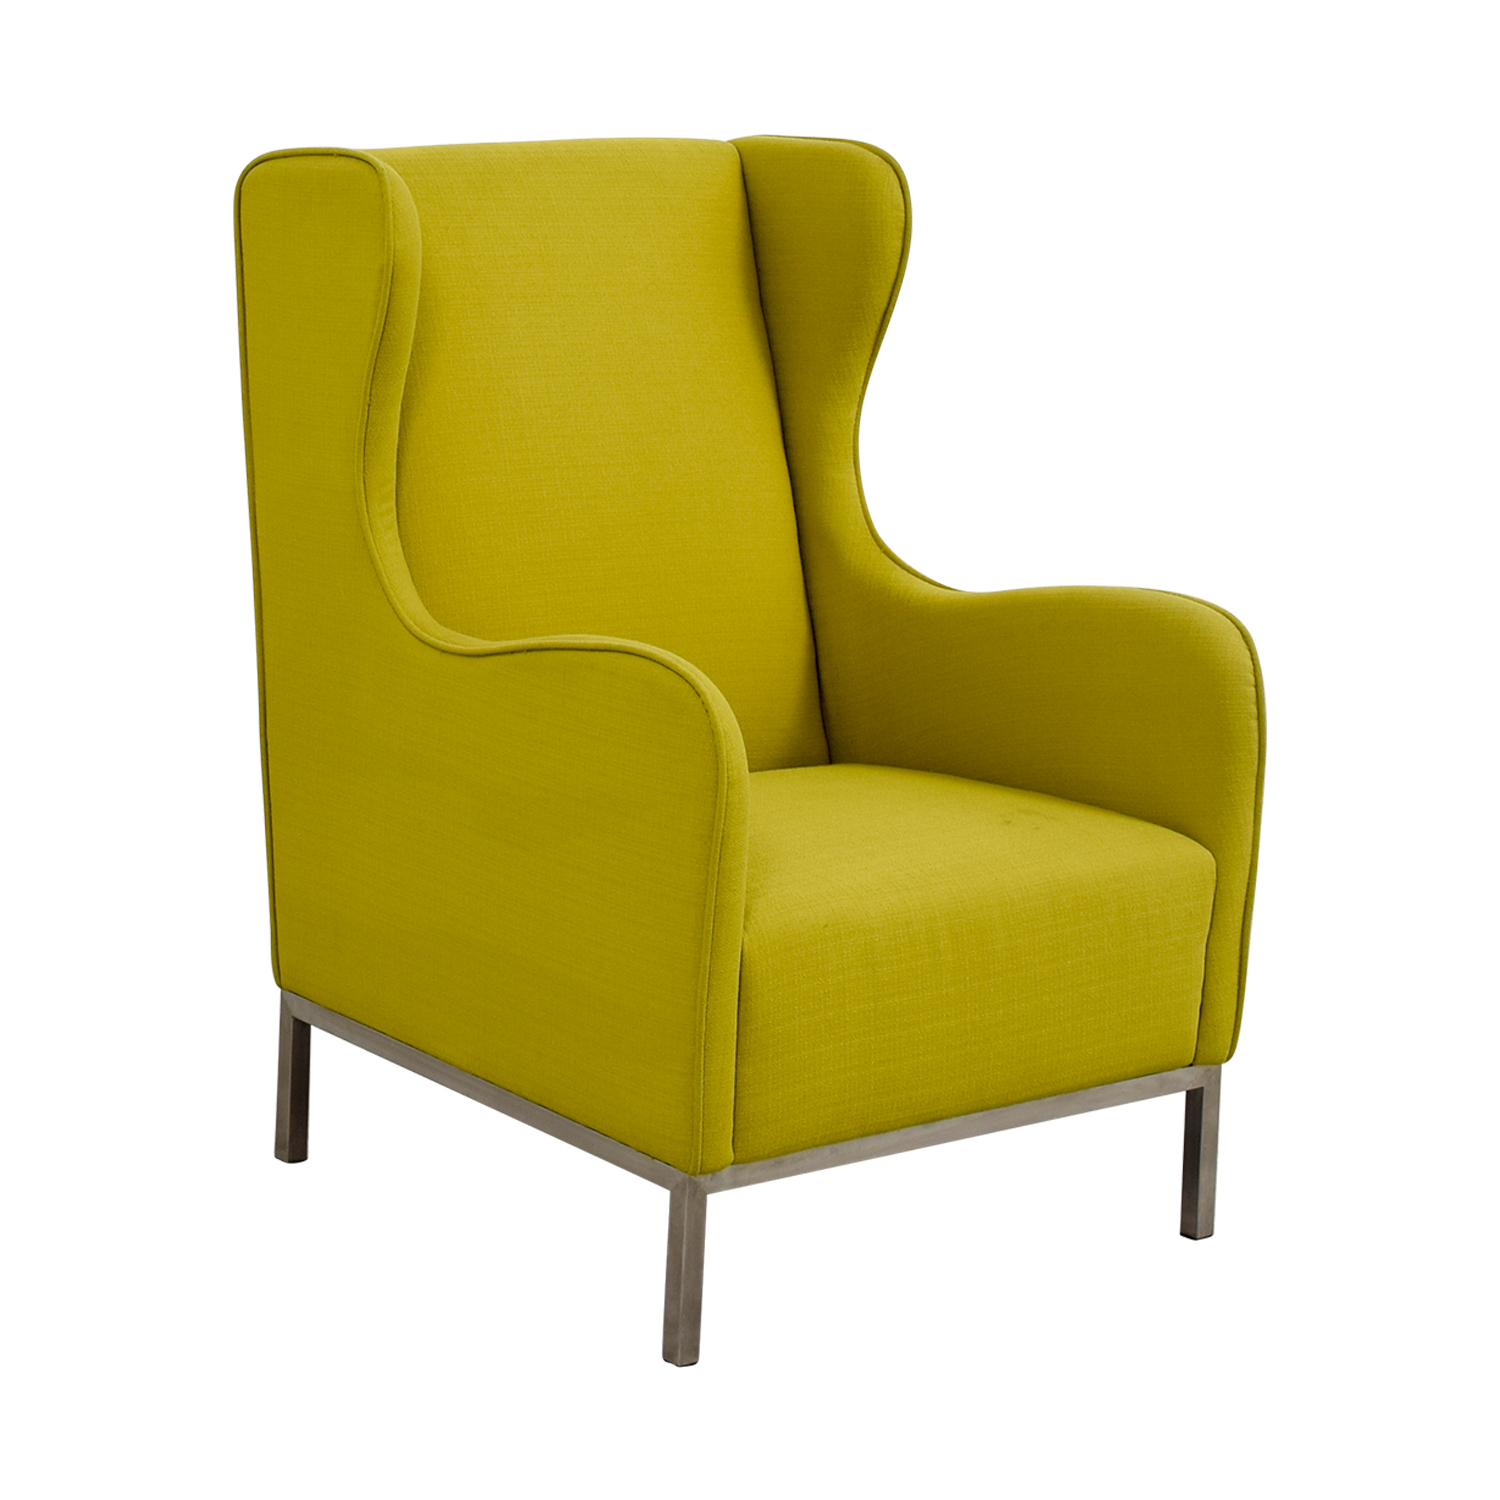 Crate and Barrel Crate and Barrel Neon Green Accent Chair second hand